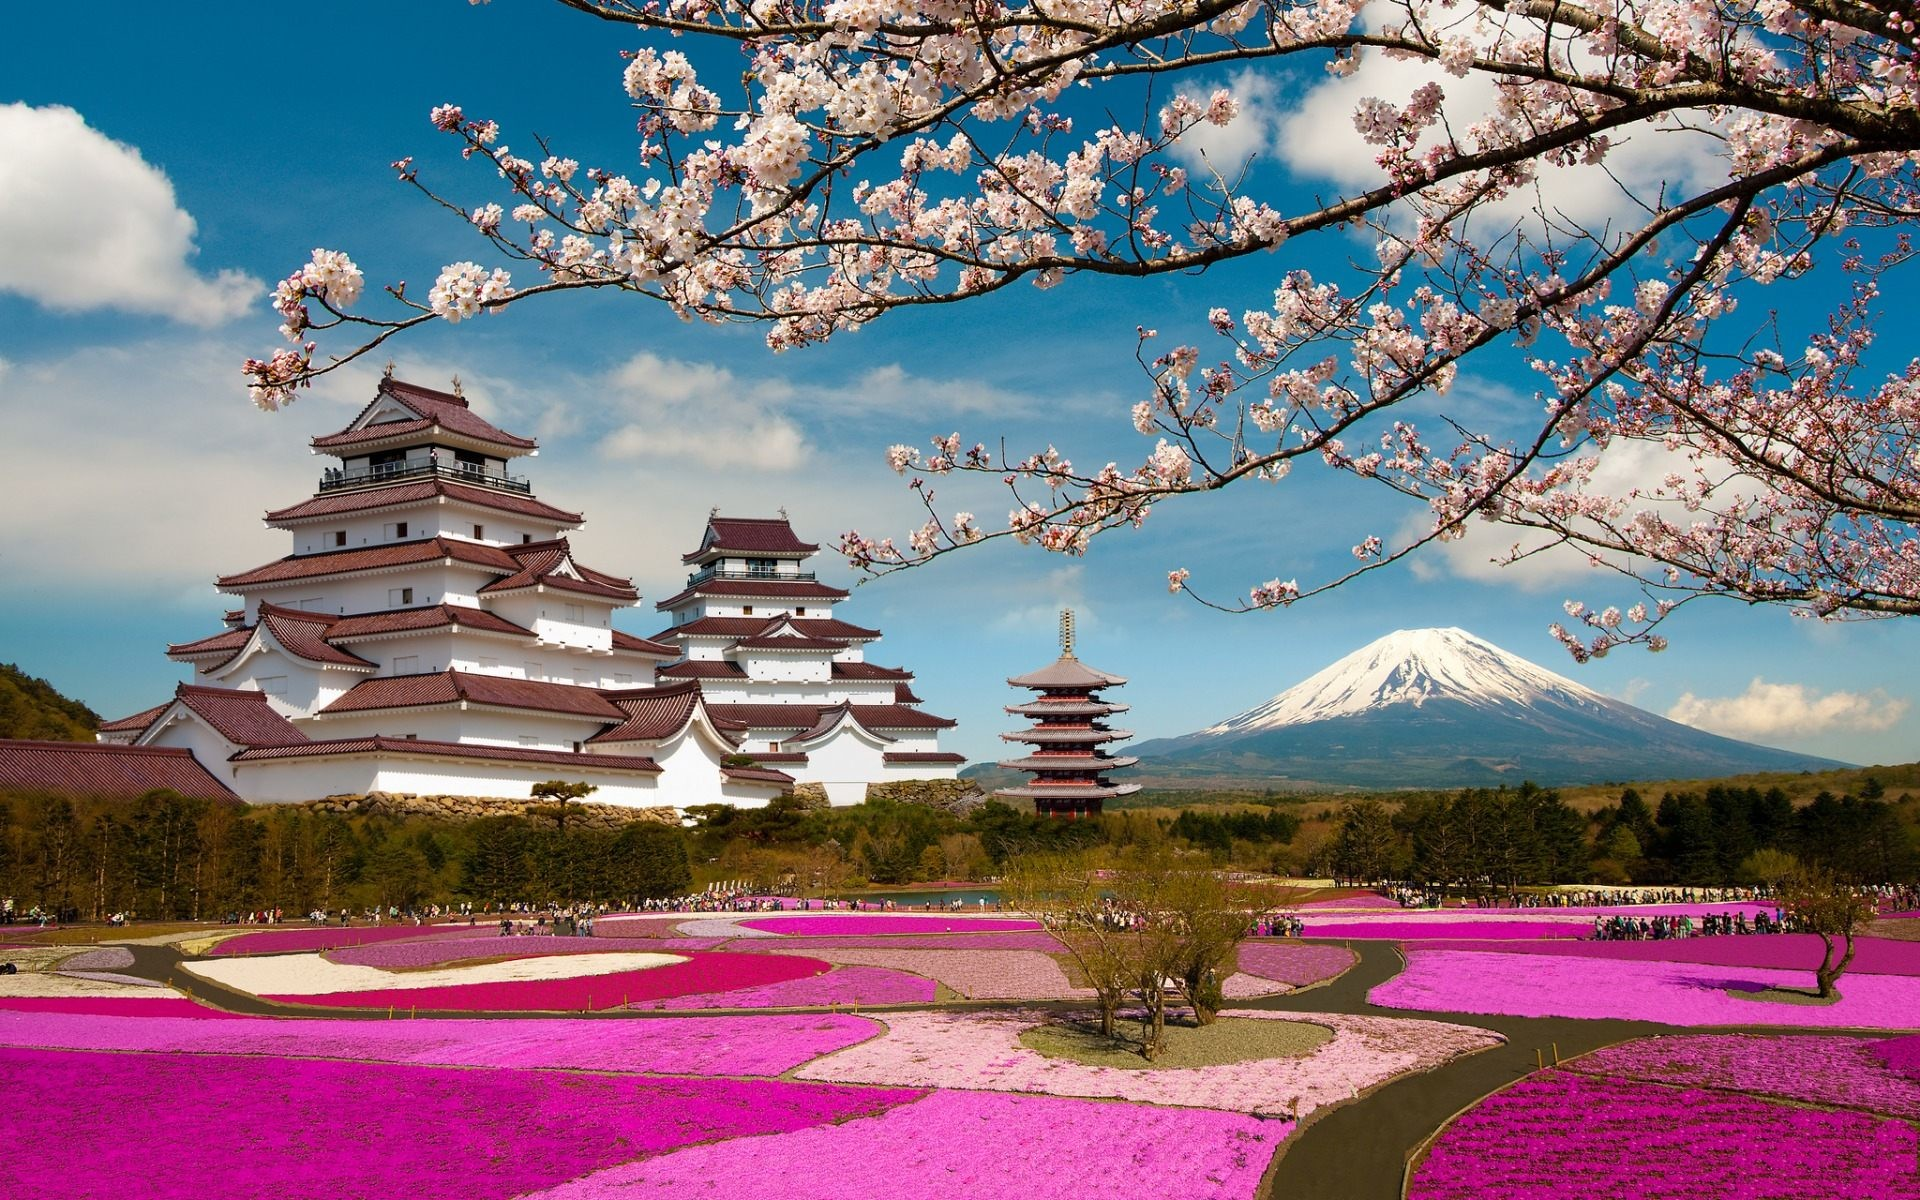 Res: 1920x1200, Japan Scenery Backgrounds by Lawanna Hibbler on M.F. Backgrounds